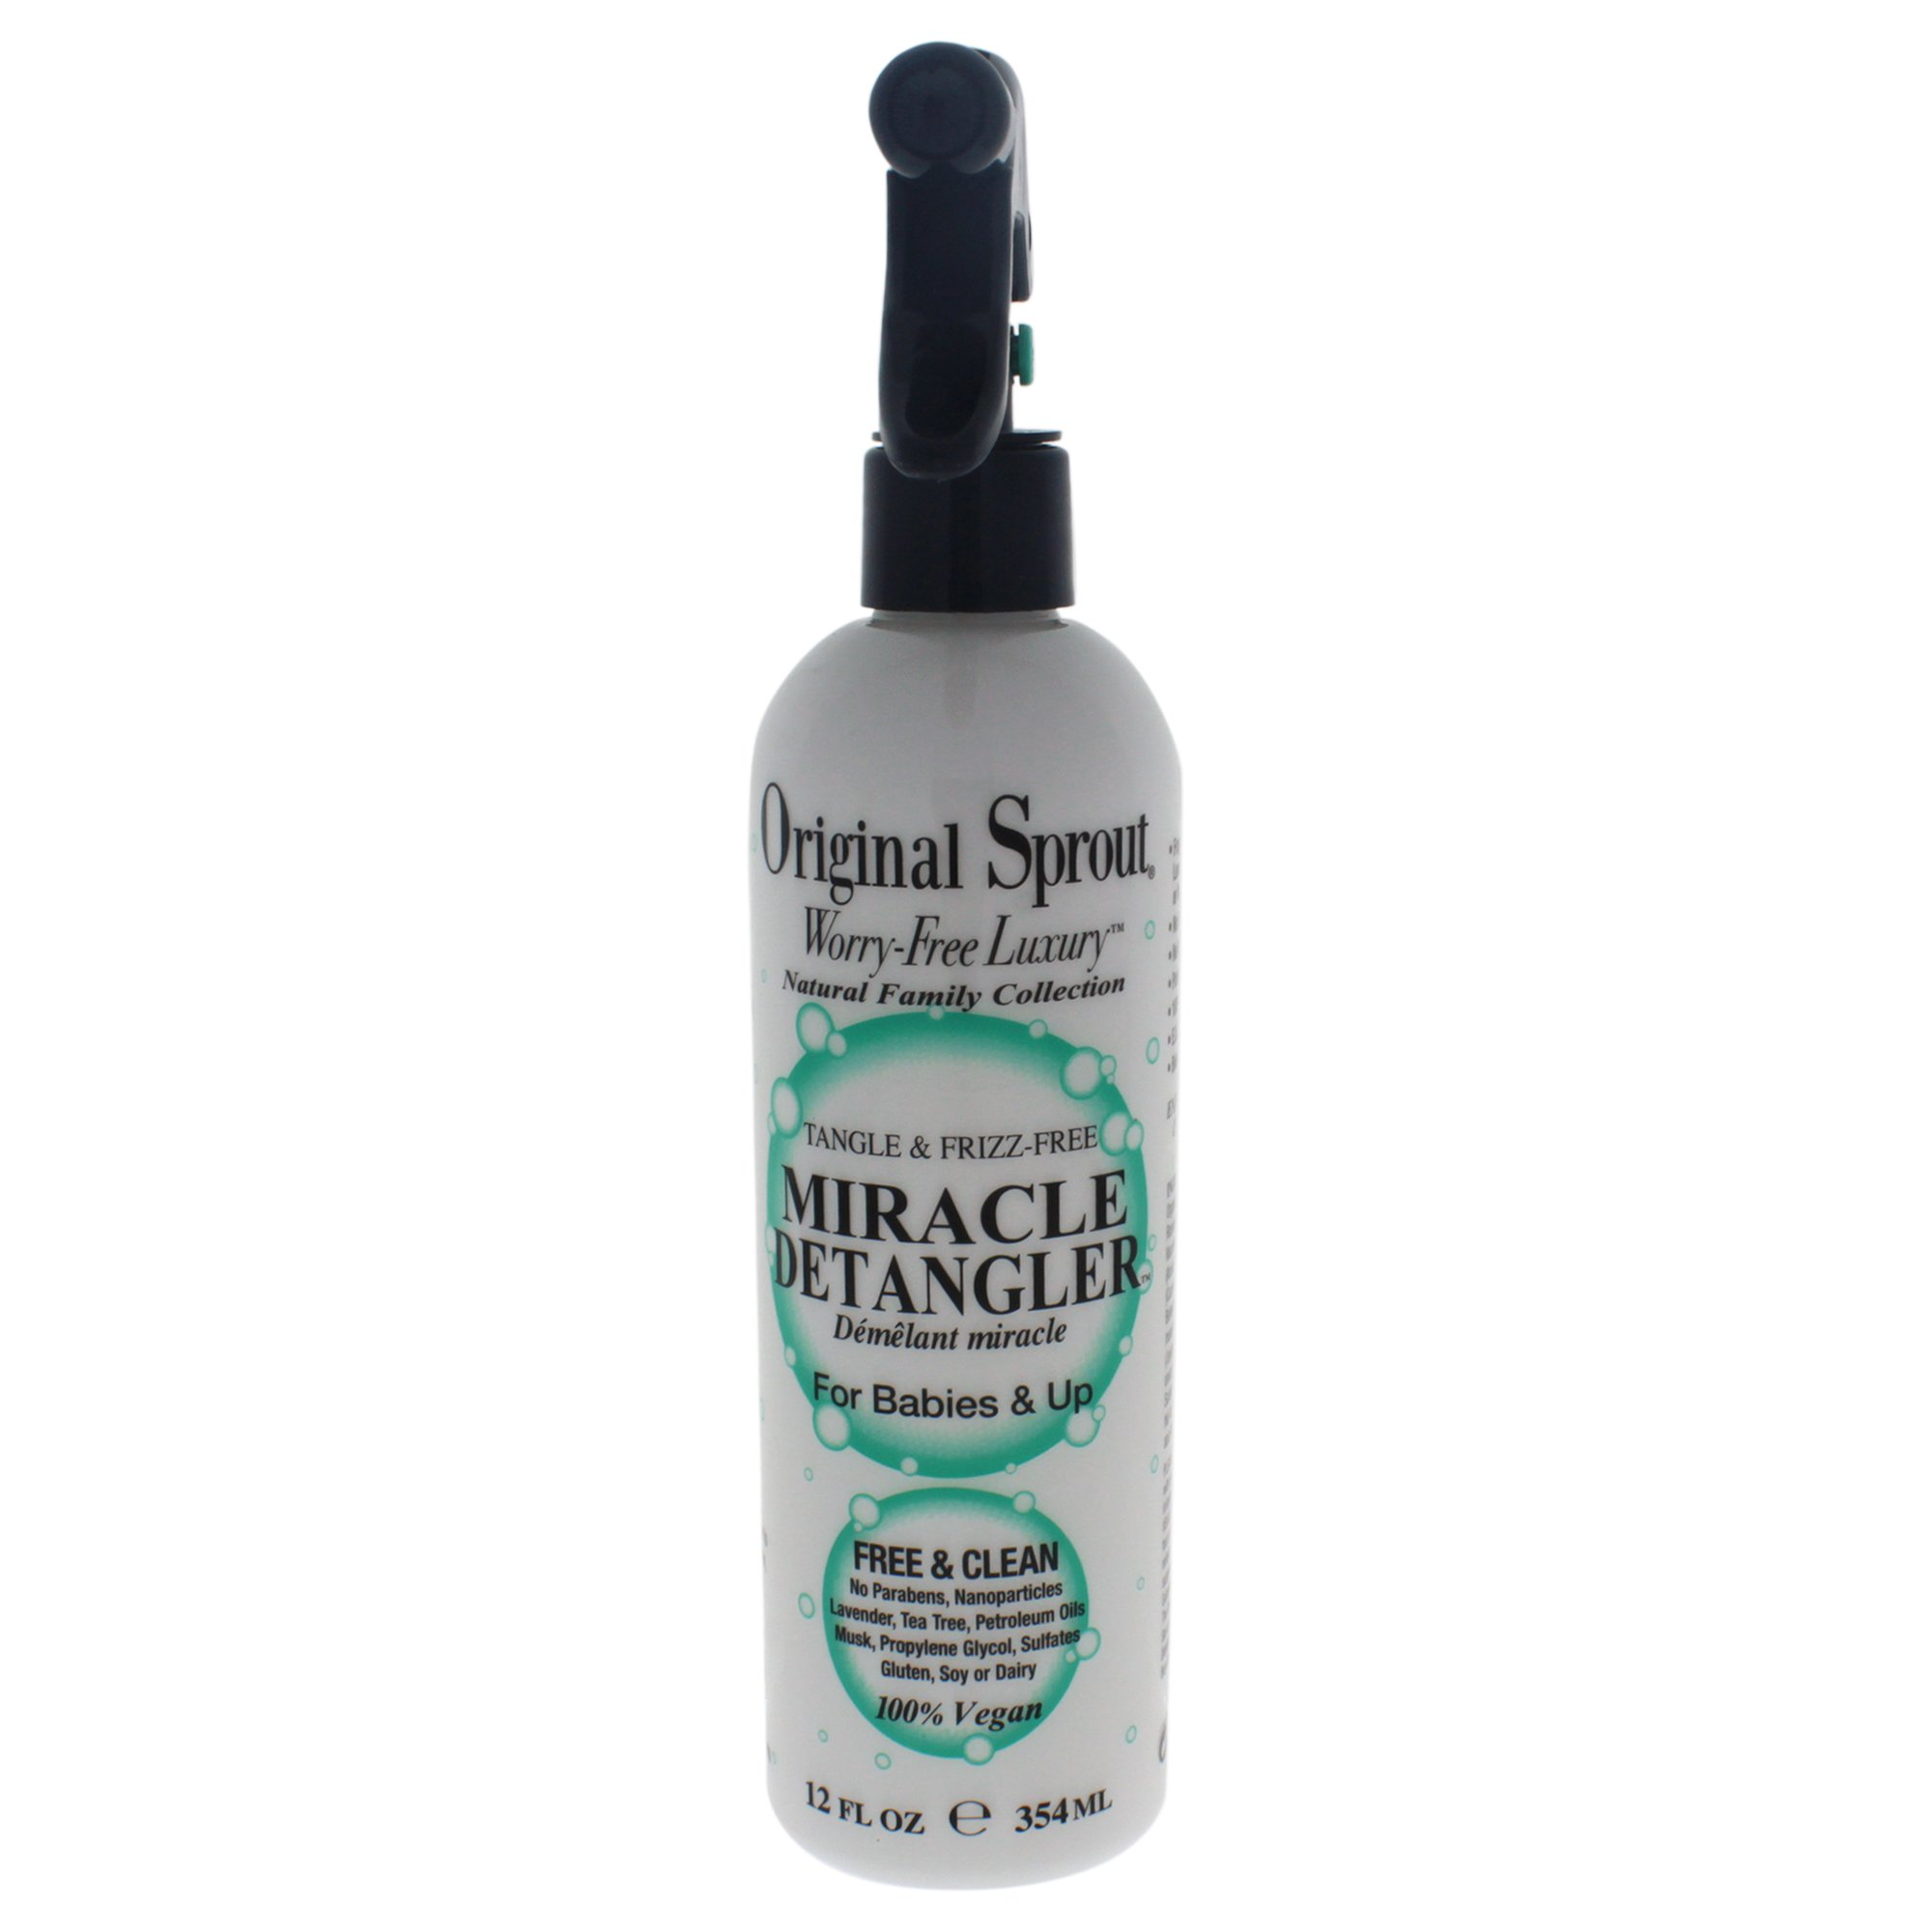 Original Sprout Miracle Detangler. All Natural Hair Care. Hair Moisturizer and Leave-In Conditioner Spray, 12 Fl Oz